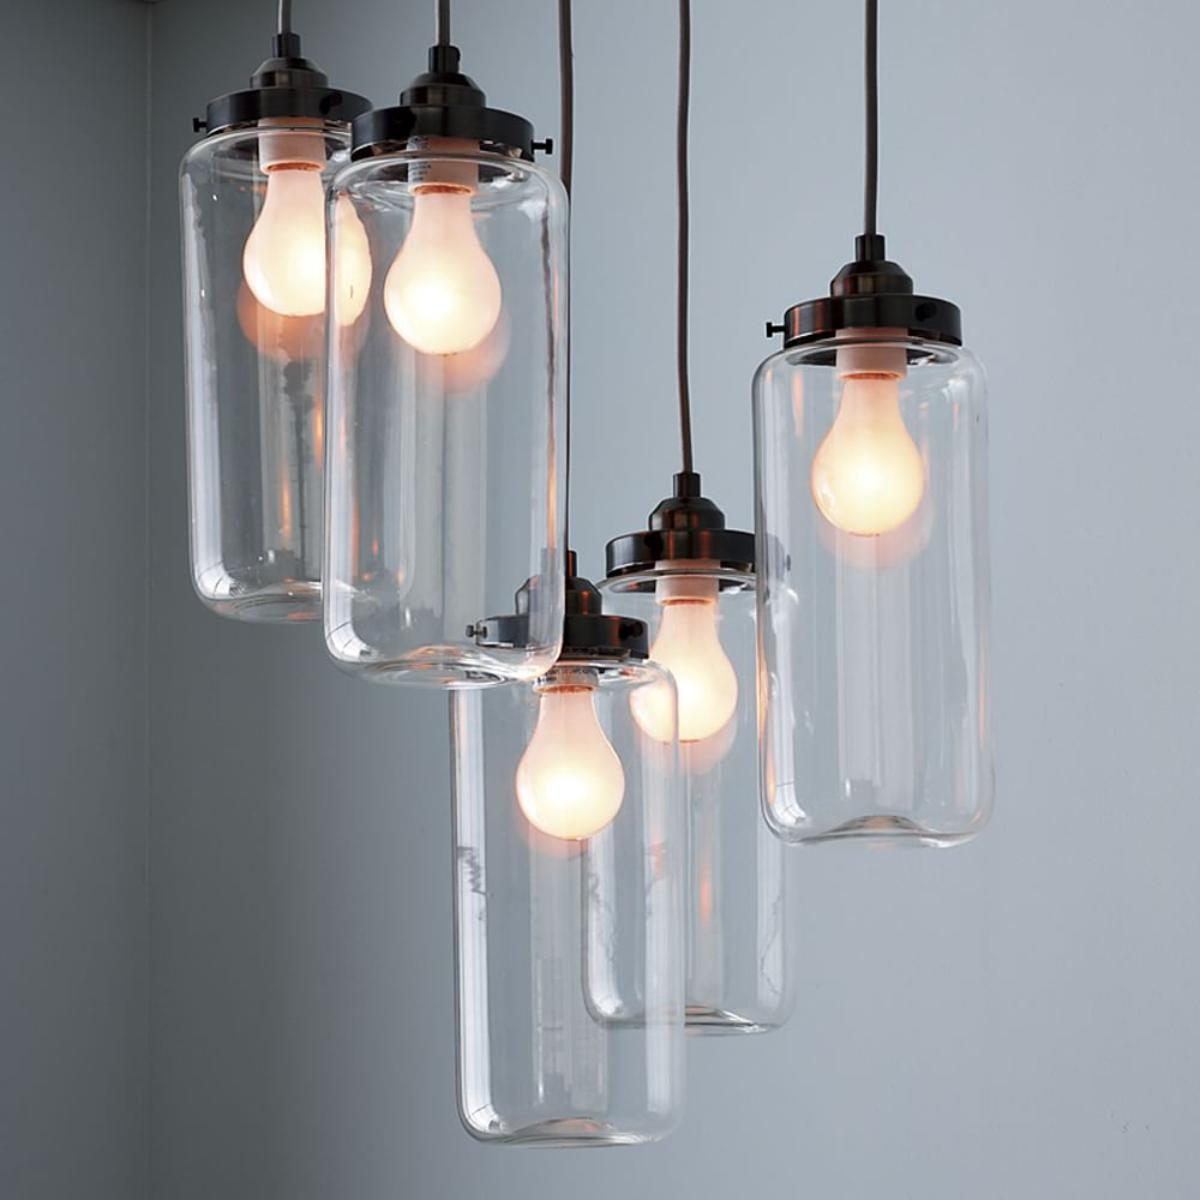 West Elm Chandelier | West Elm Glass Orb Chandelier | West Elm Pendant Light